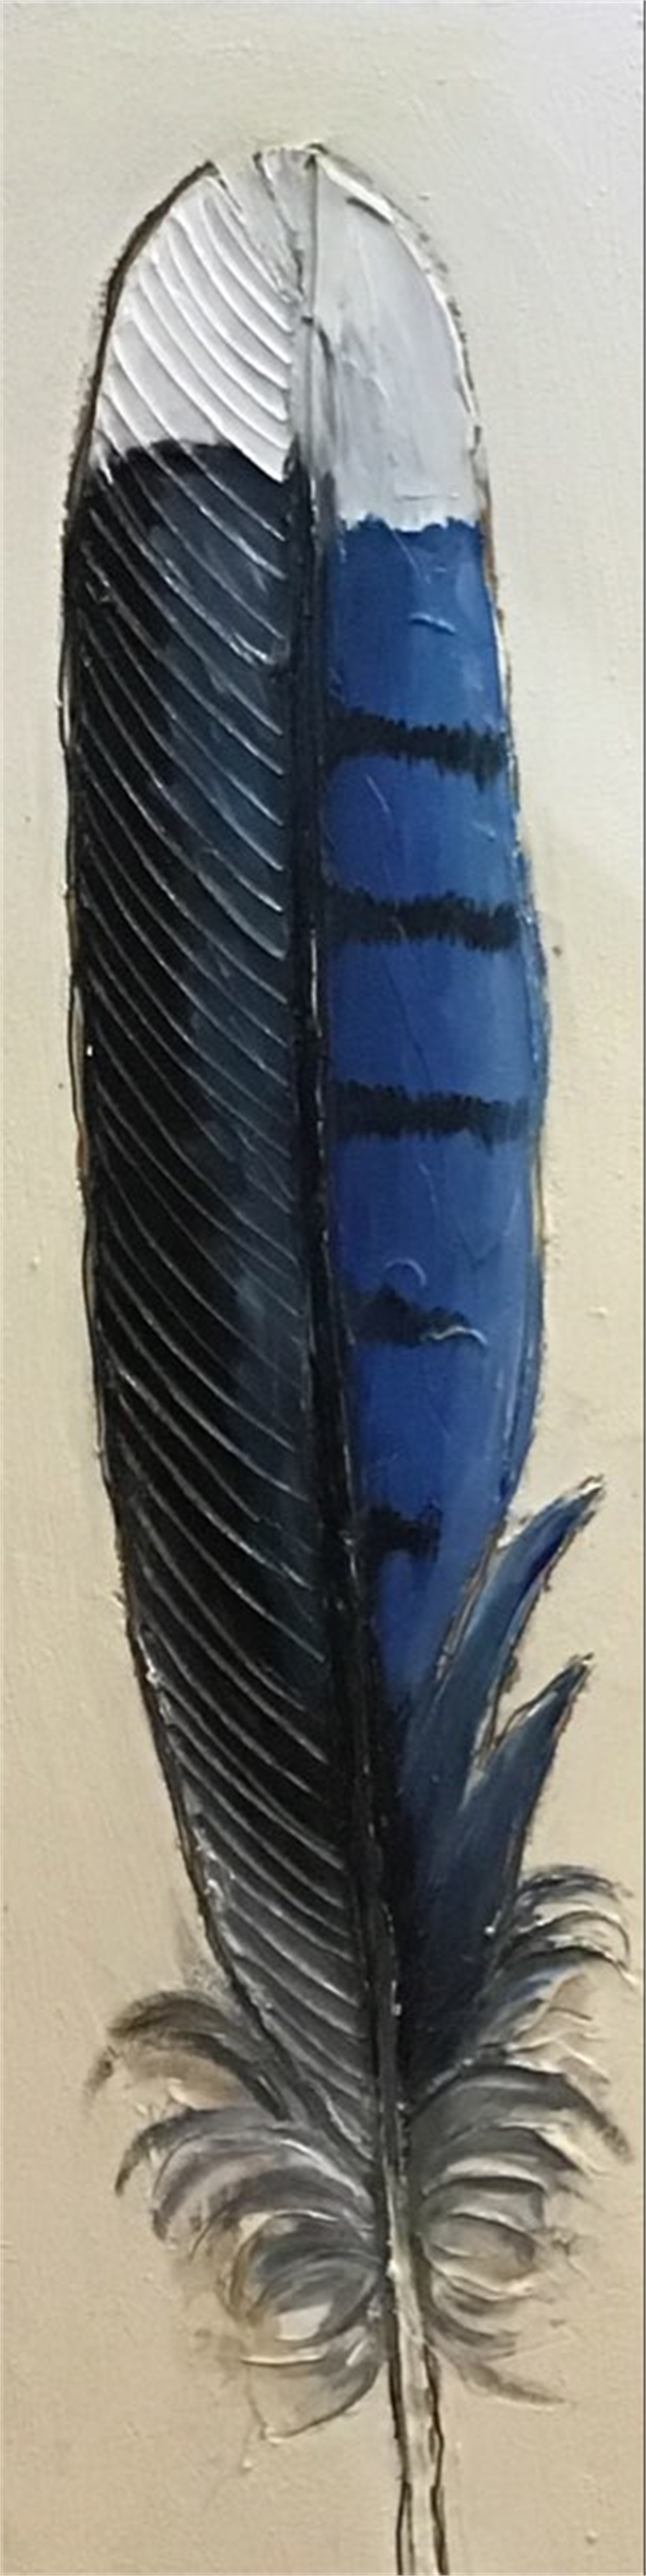 Blue Jay Feather 1 by Sherry Cook